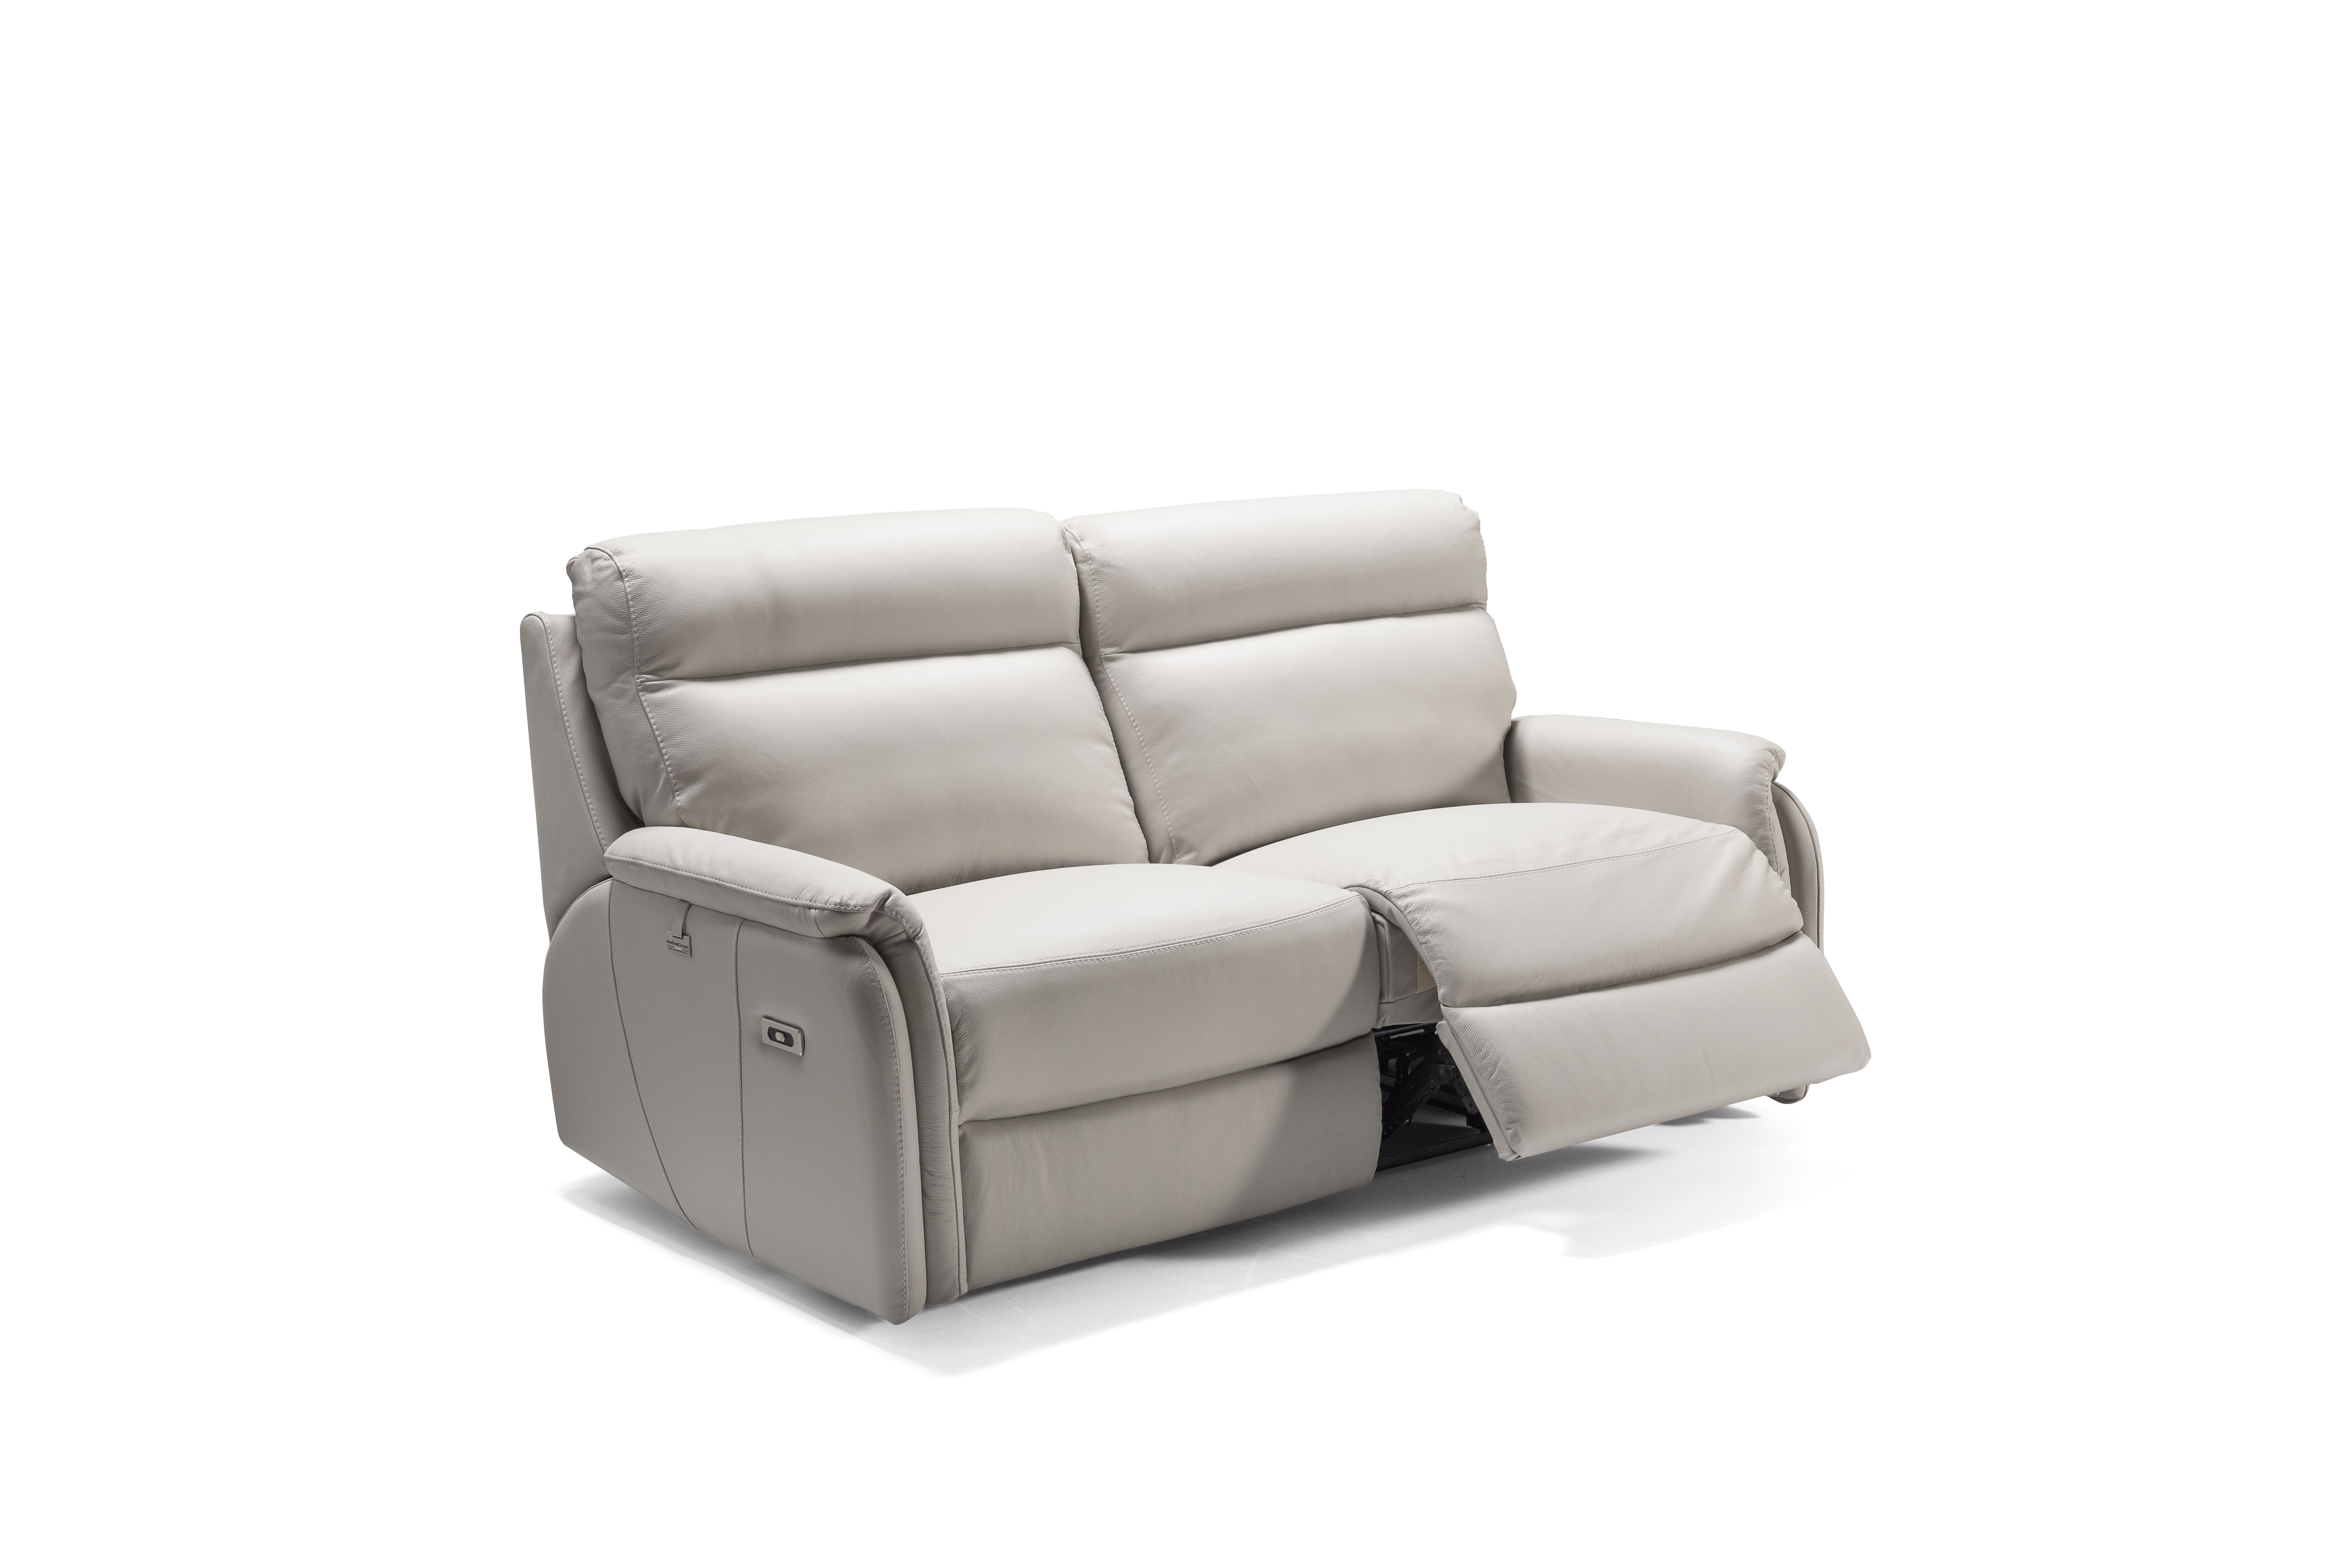 FOX Italian Leather Recliner 3 & 2 Seat Sofa by Galieri - Cenere Light Grey - Image 3 of 4